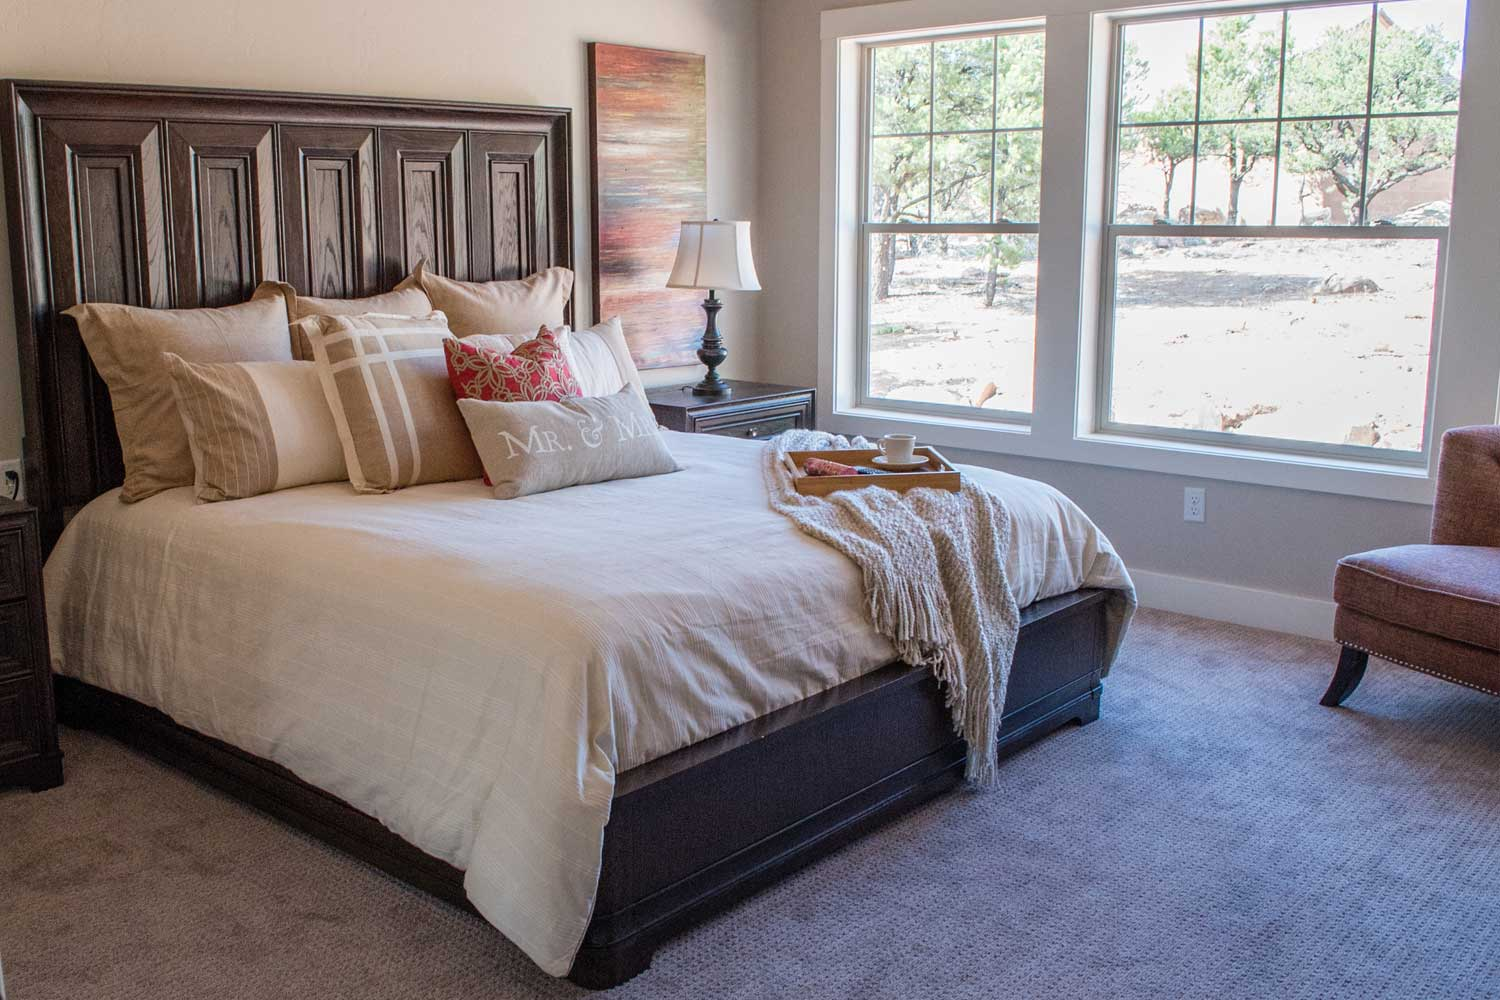 master bedroom with king size bed, side tables, and window view into backyard